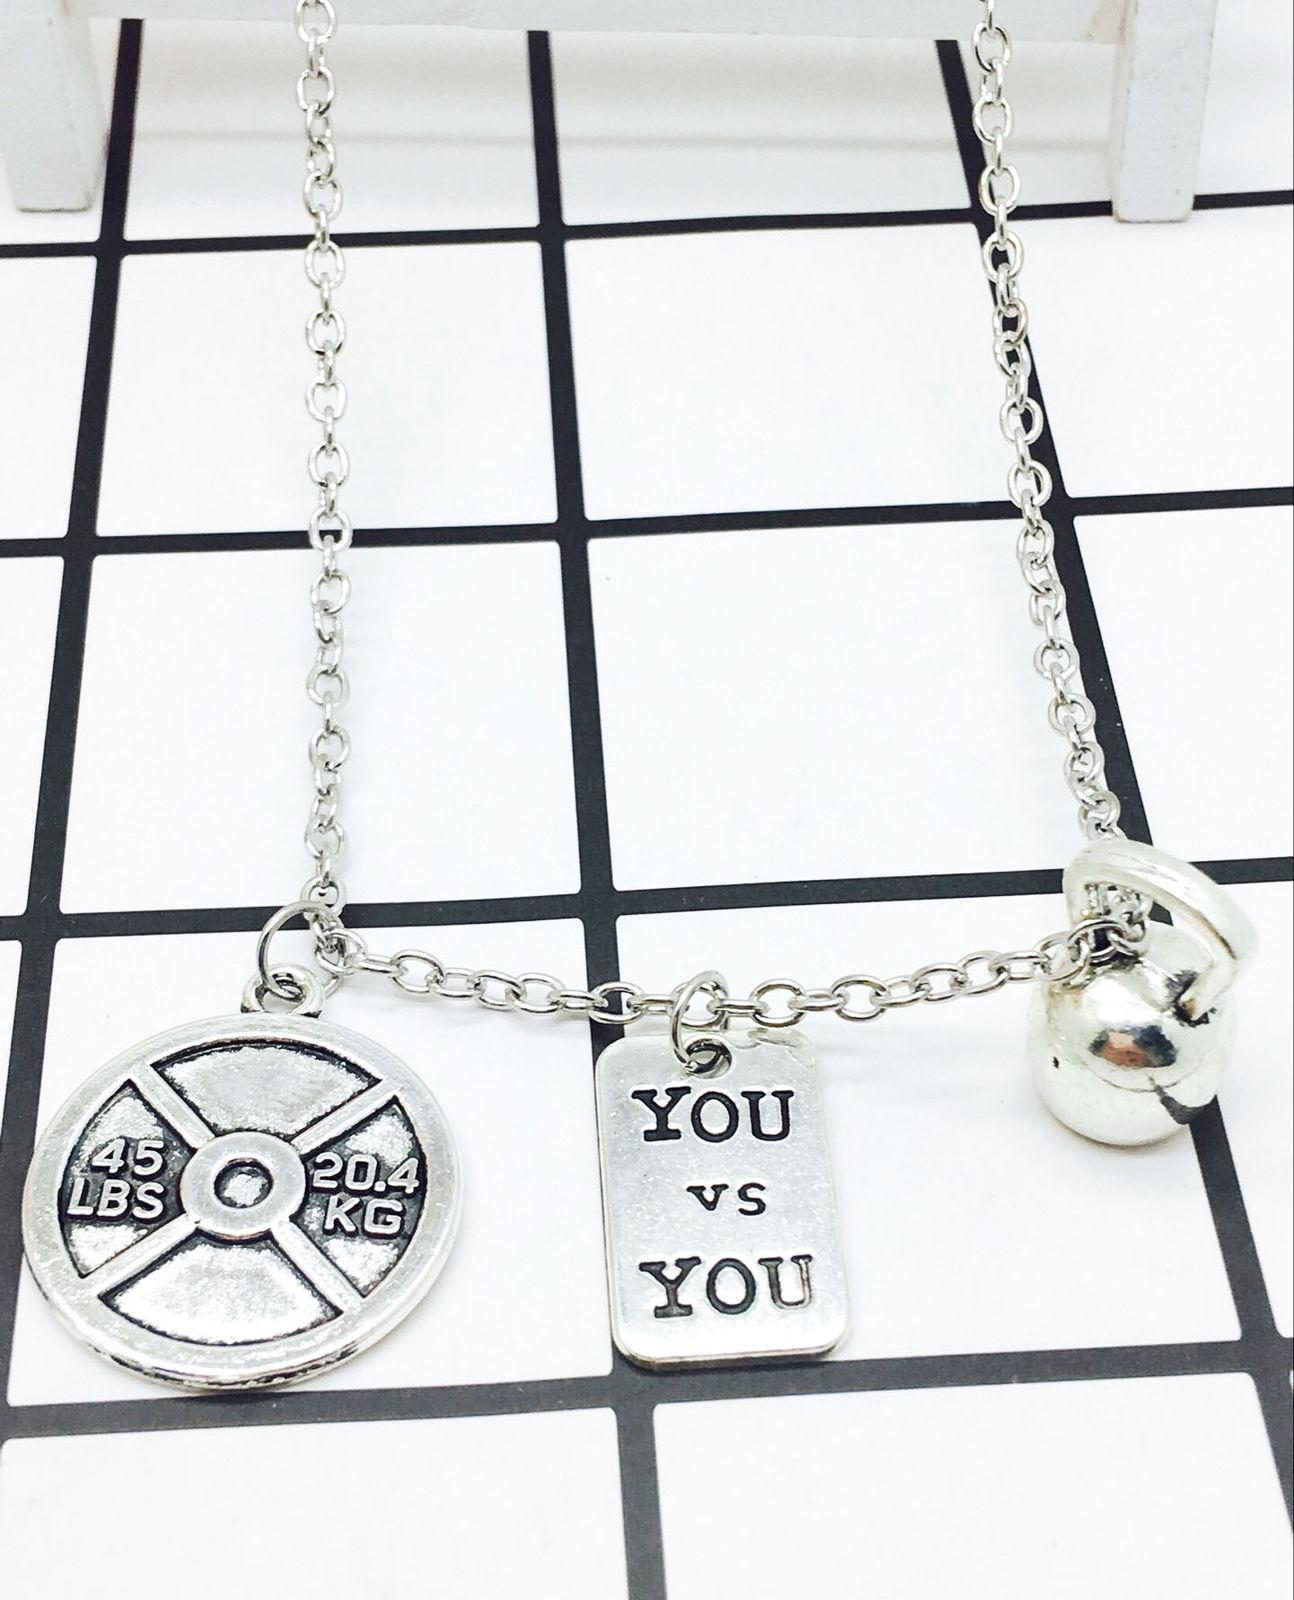 Wholesale 2018 New Hot Sell Antique Silver 45lbs&You And You+Kettlebell  Charms Fitness Pendant Necklace Creative Fashion Women Jewelry Holiday Gift  ...